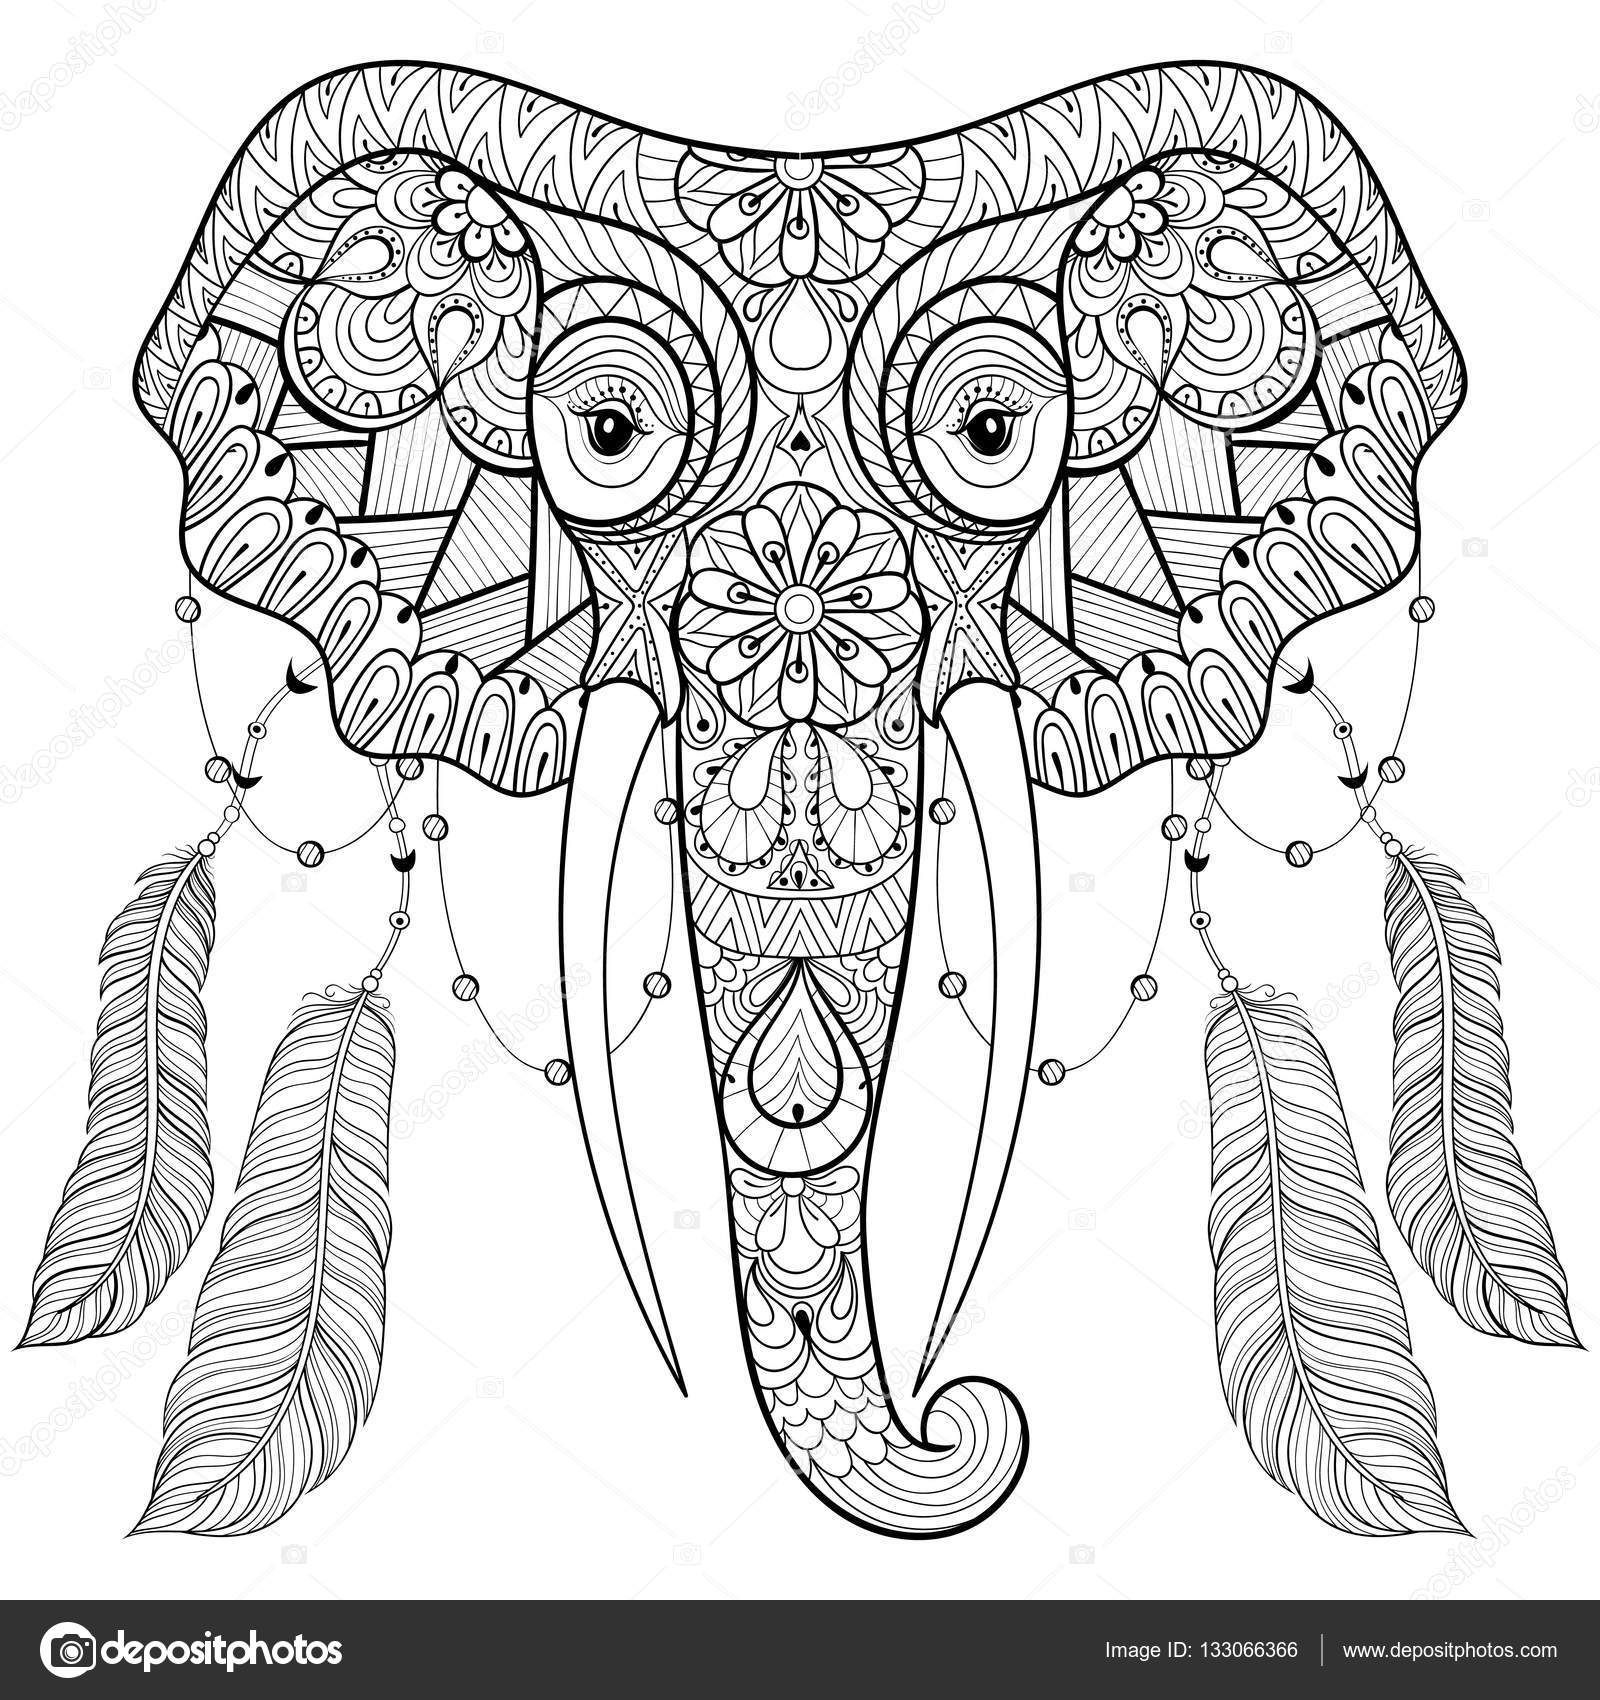 Descargar - Zentangle elefante indio con plumas de ave en un estilo ...